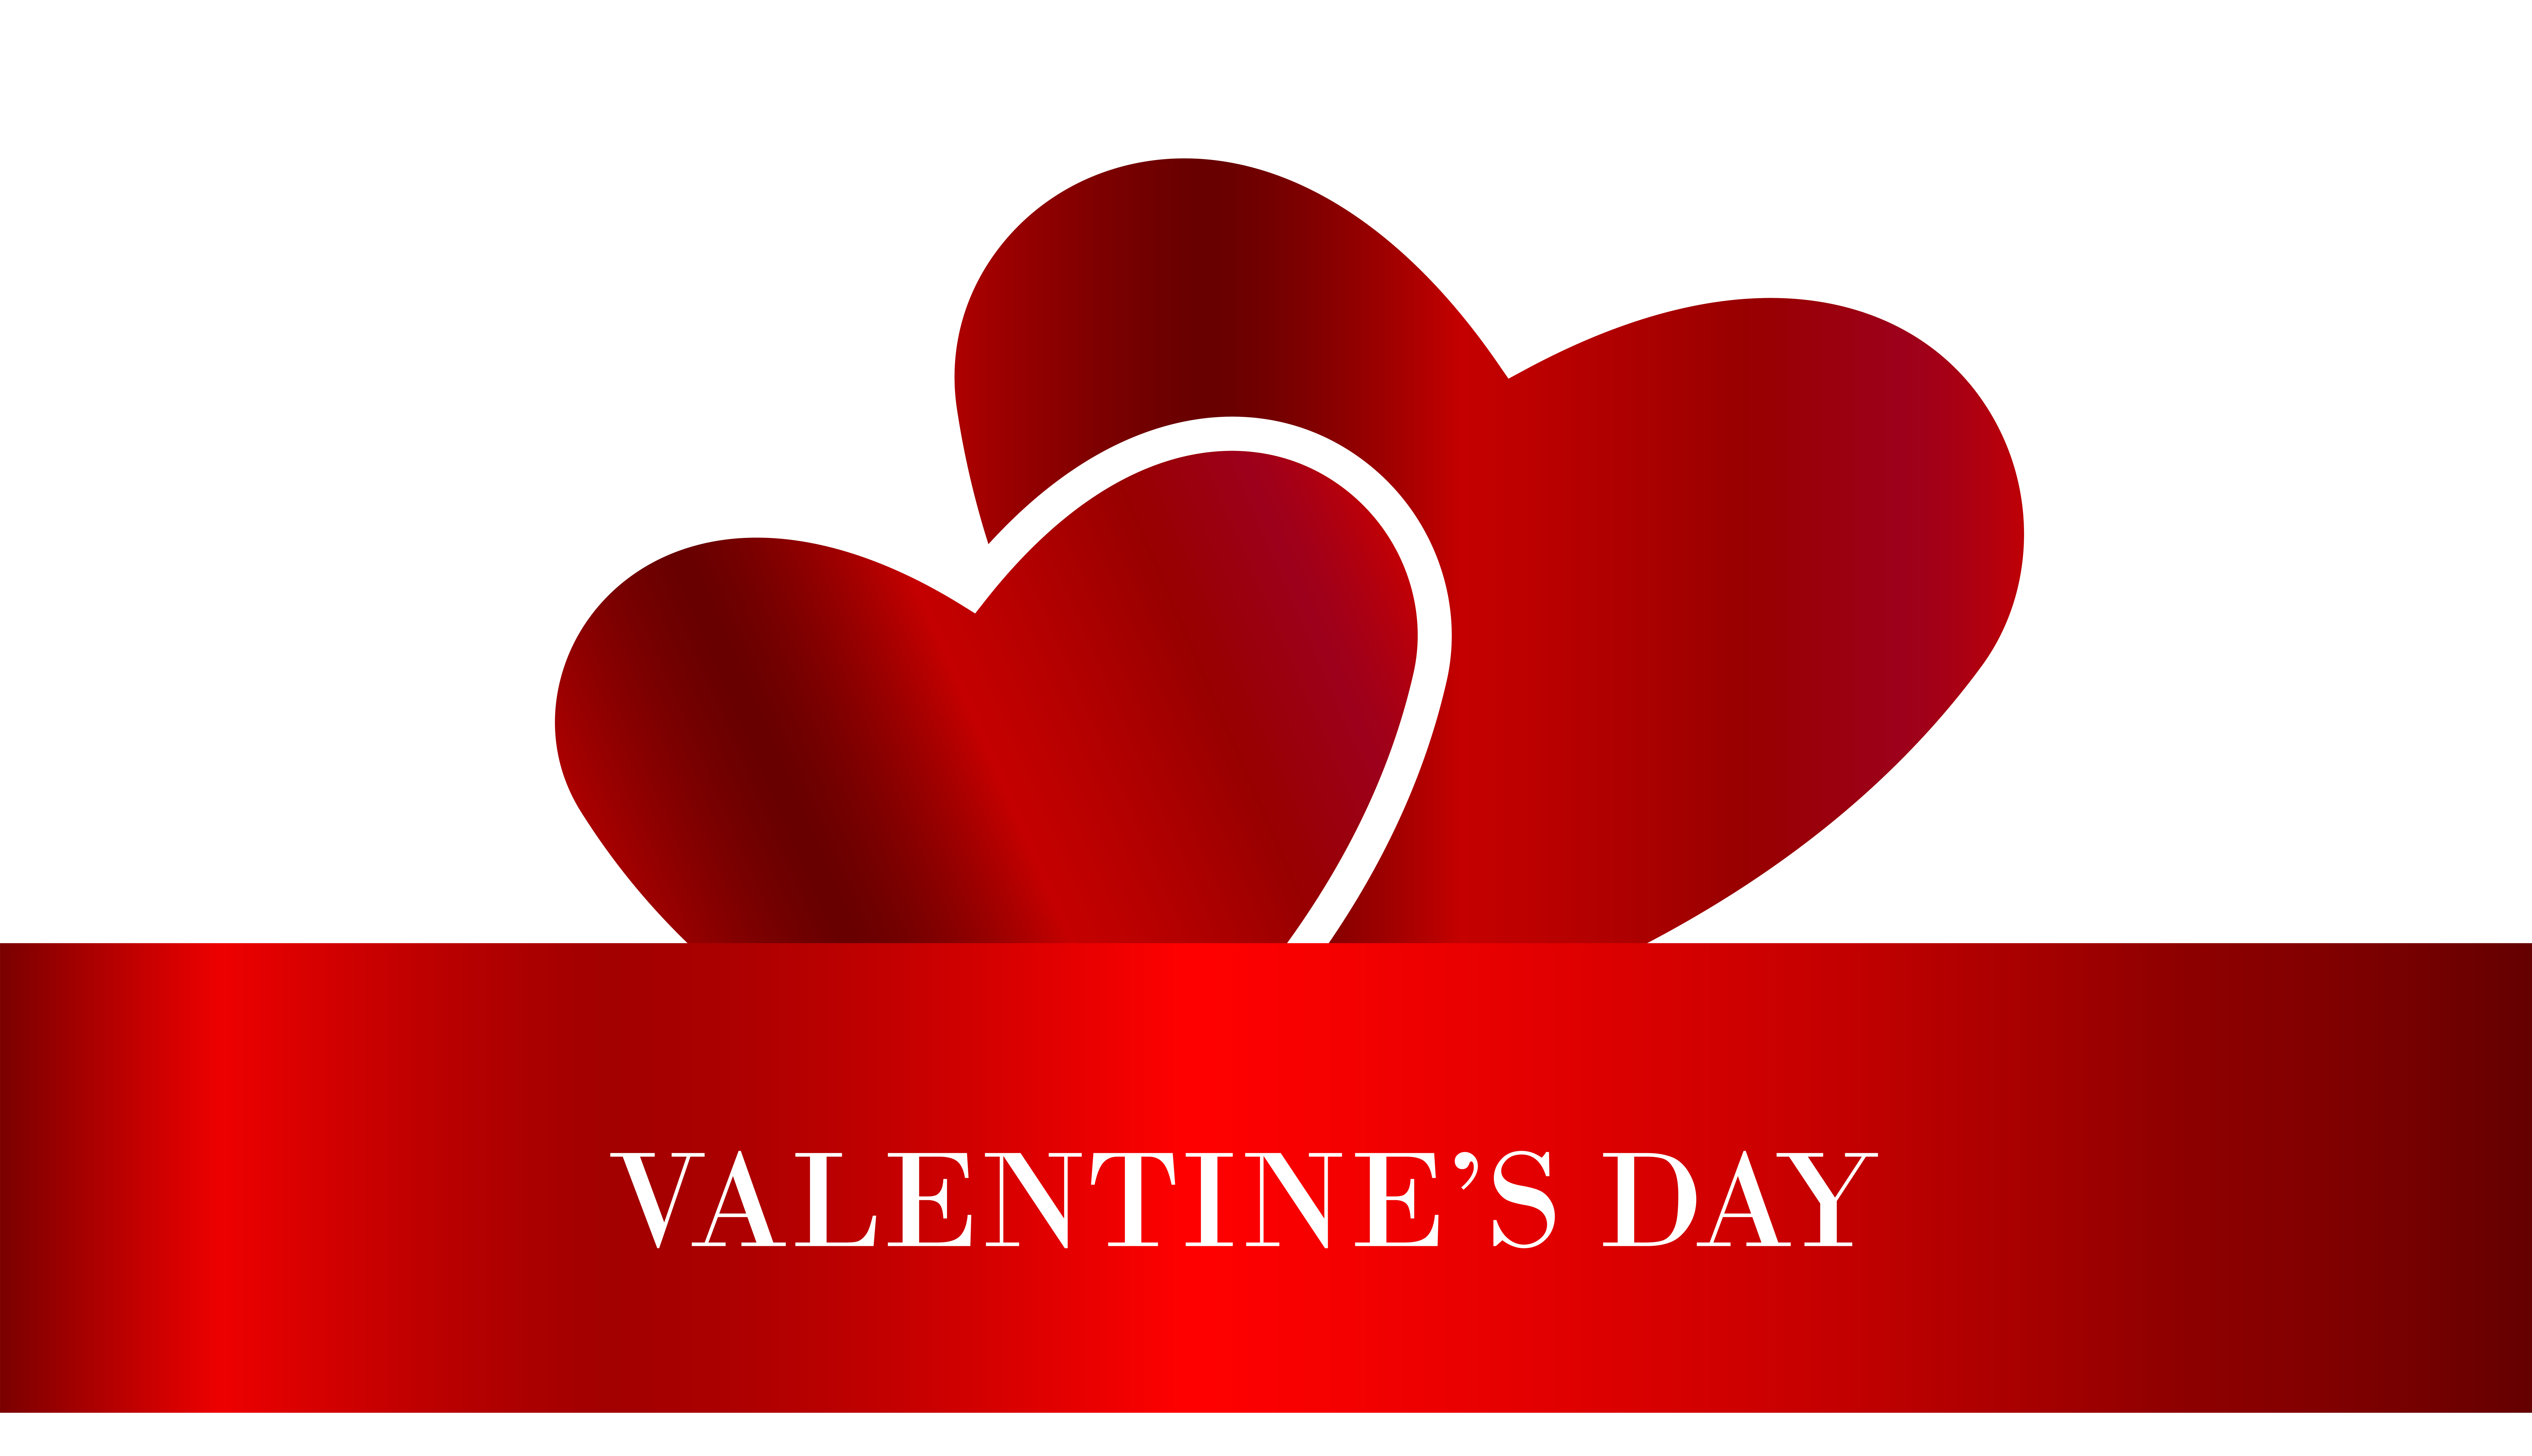 S day hearts transparent. Valentine clipart